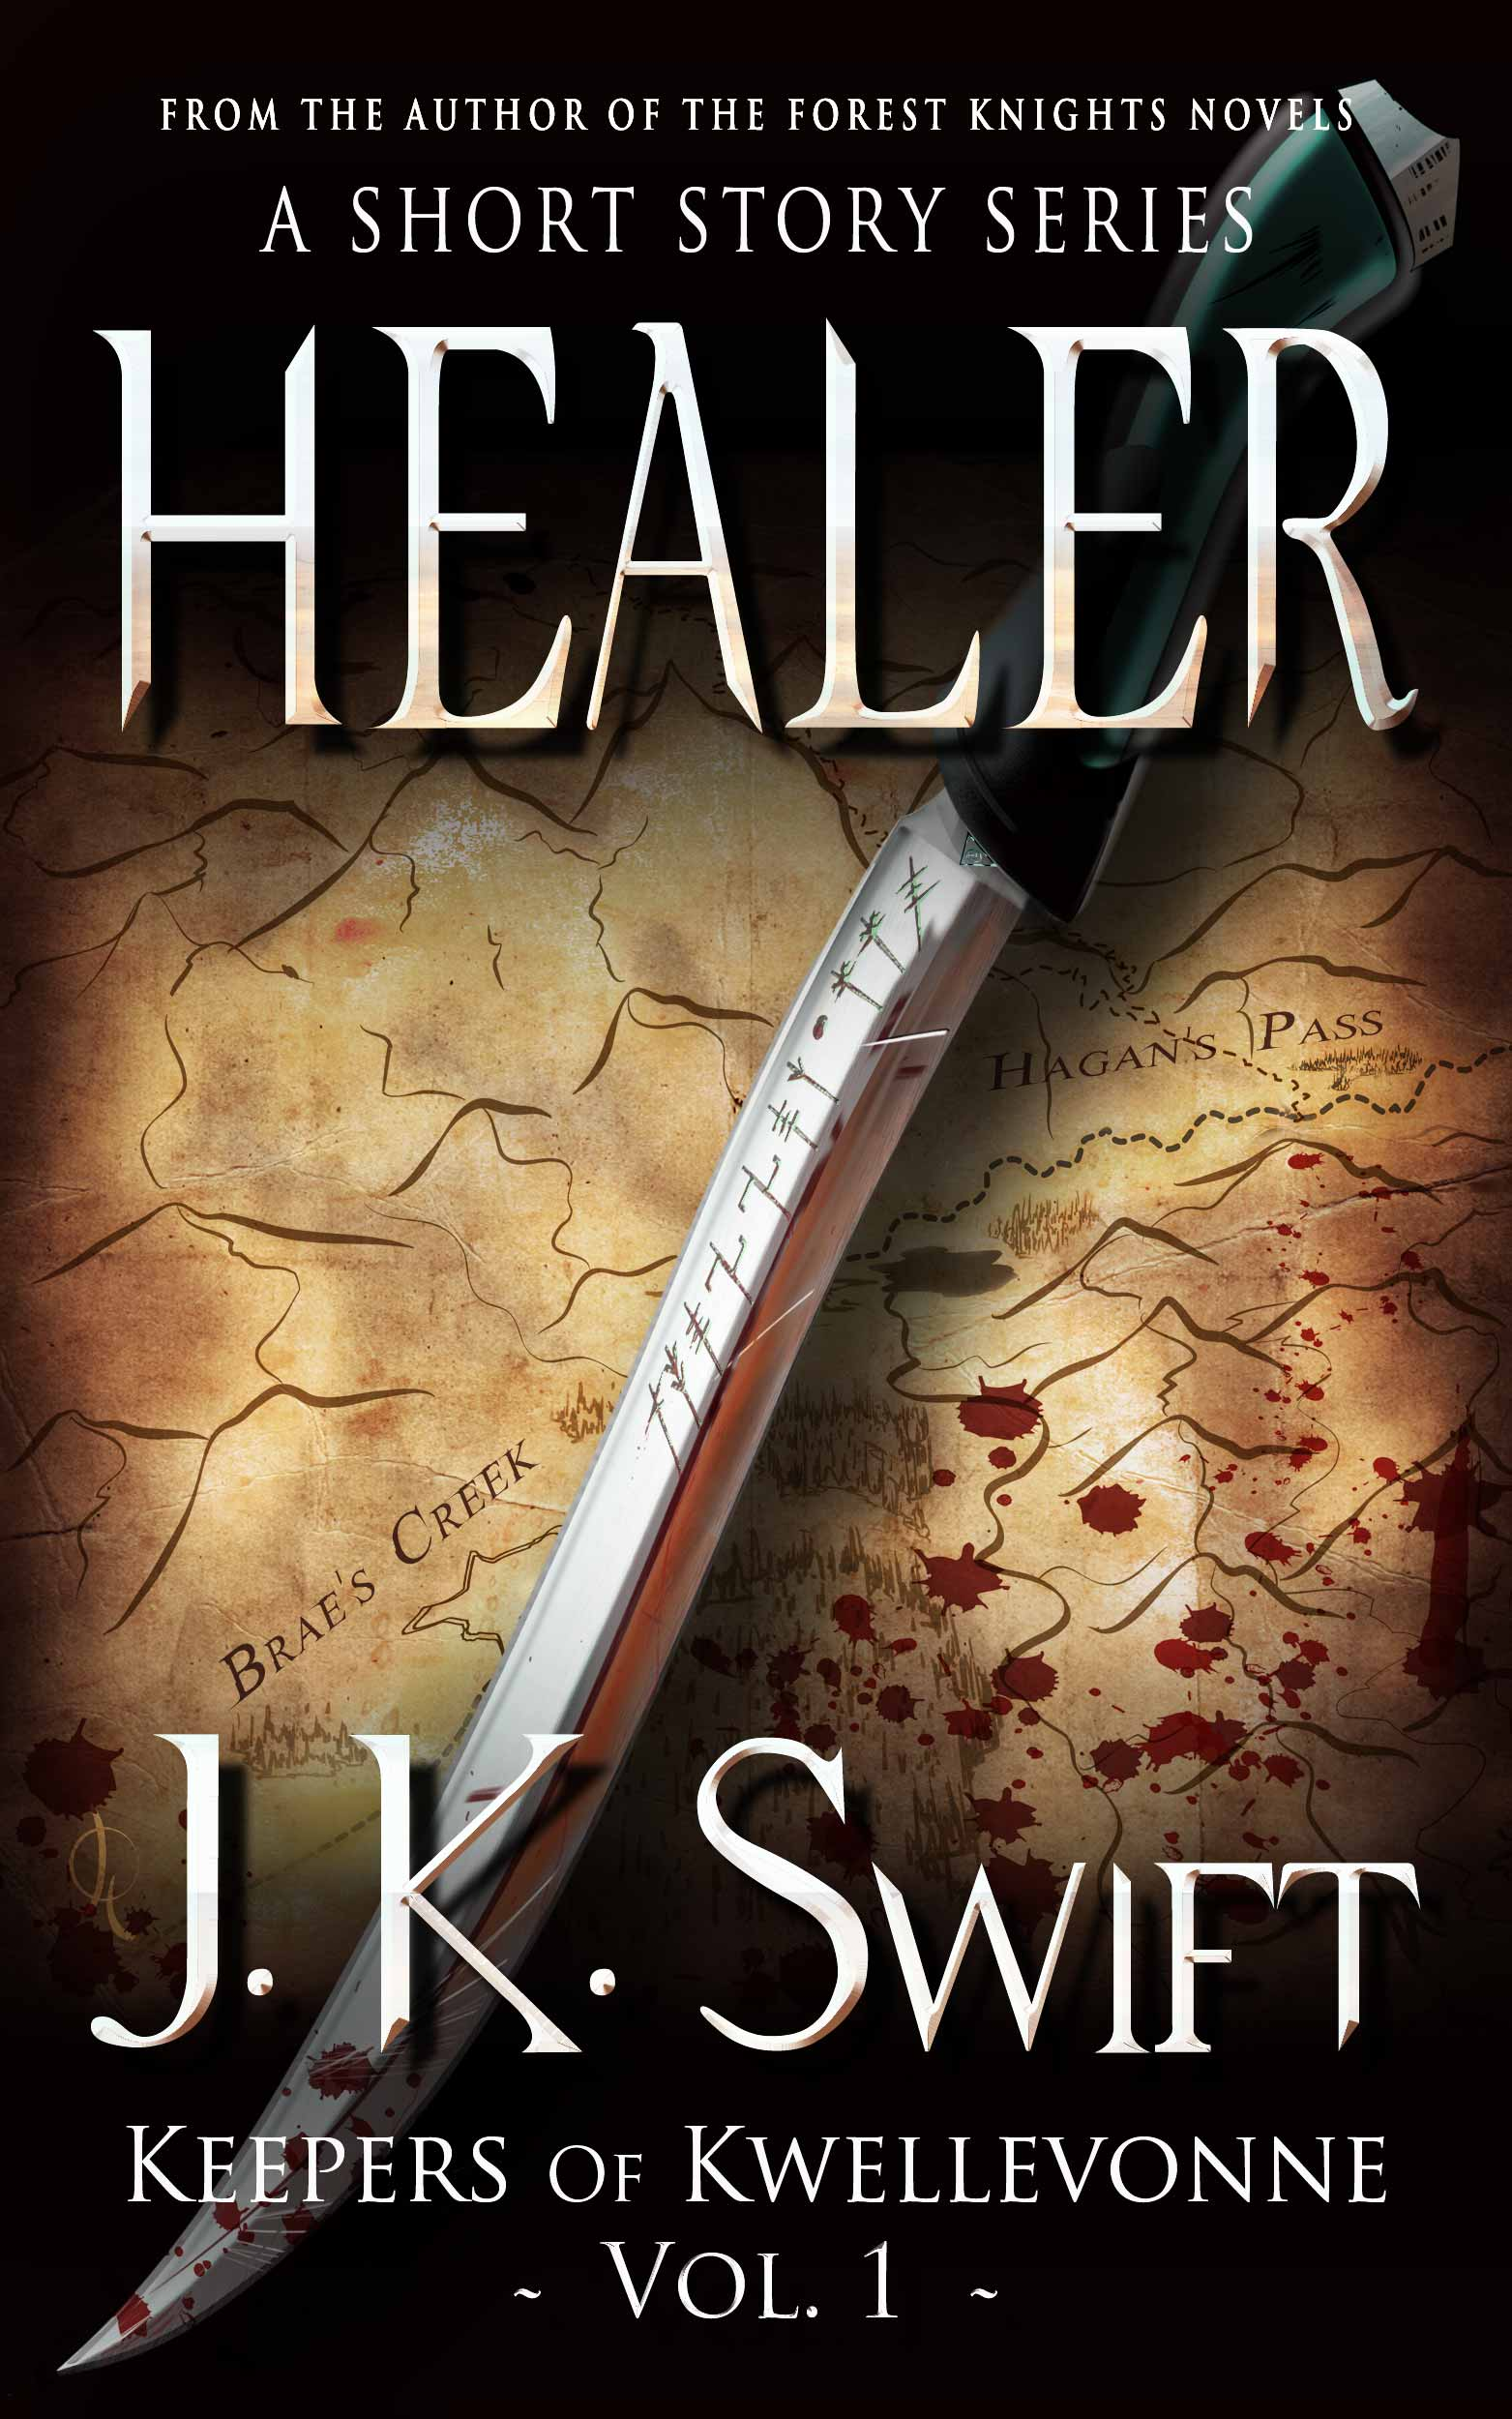 Healer (Keepers of Kwellevonne Vol. 1)